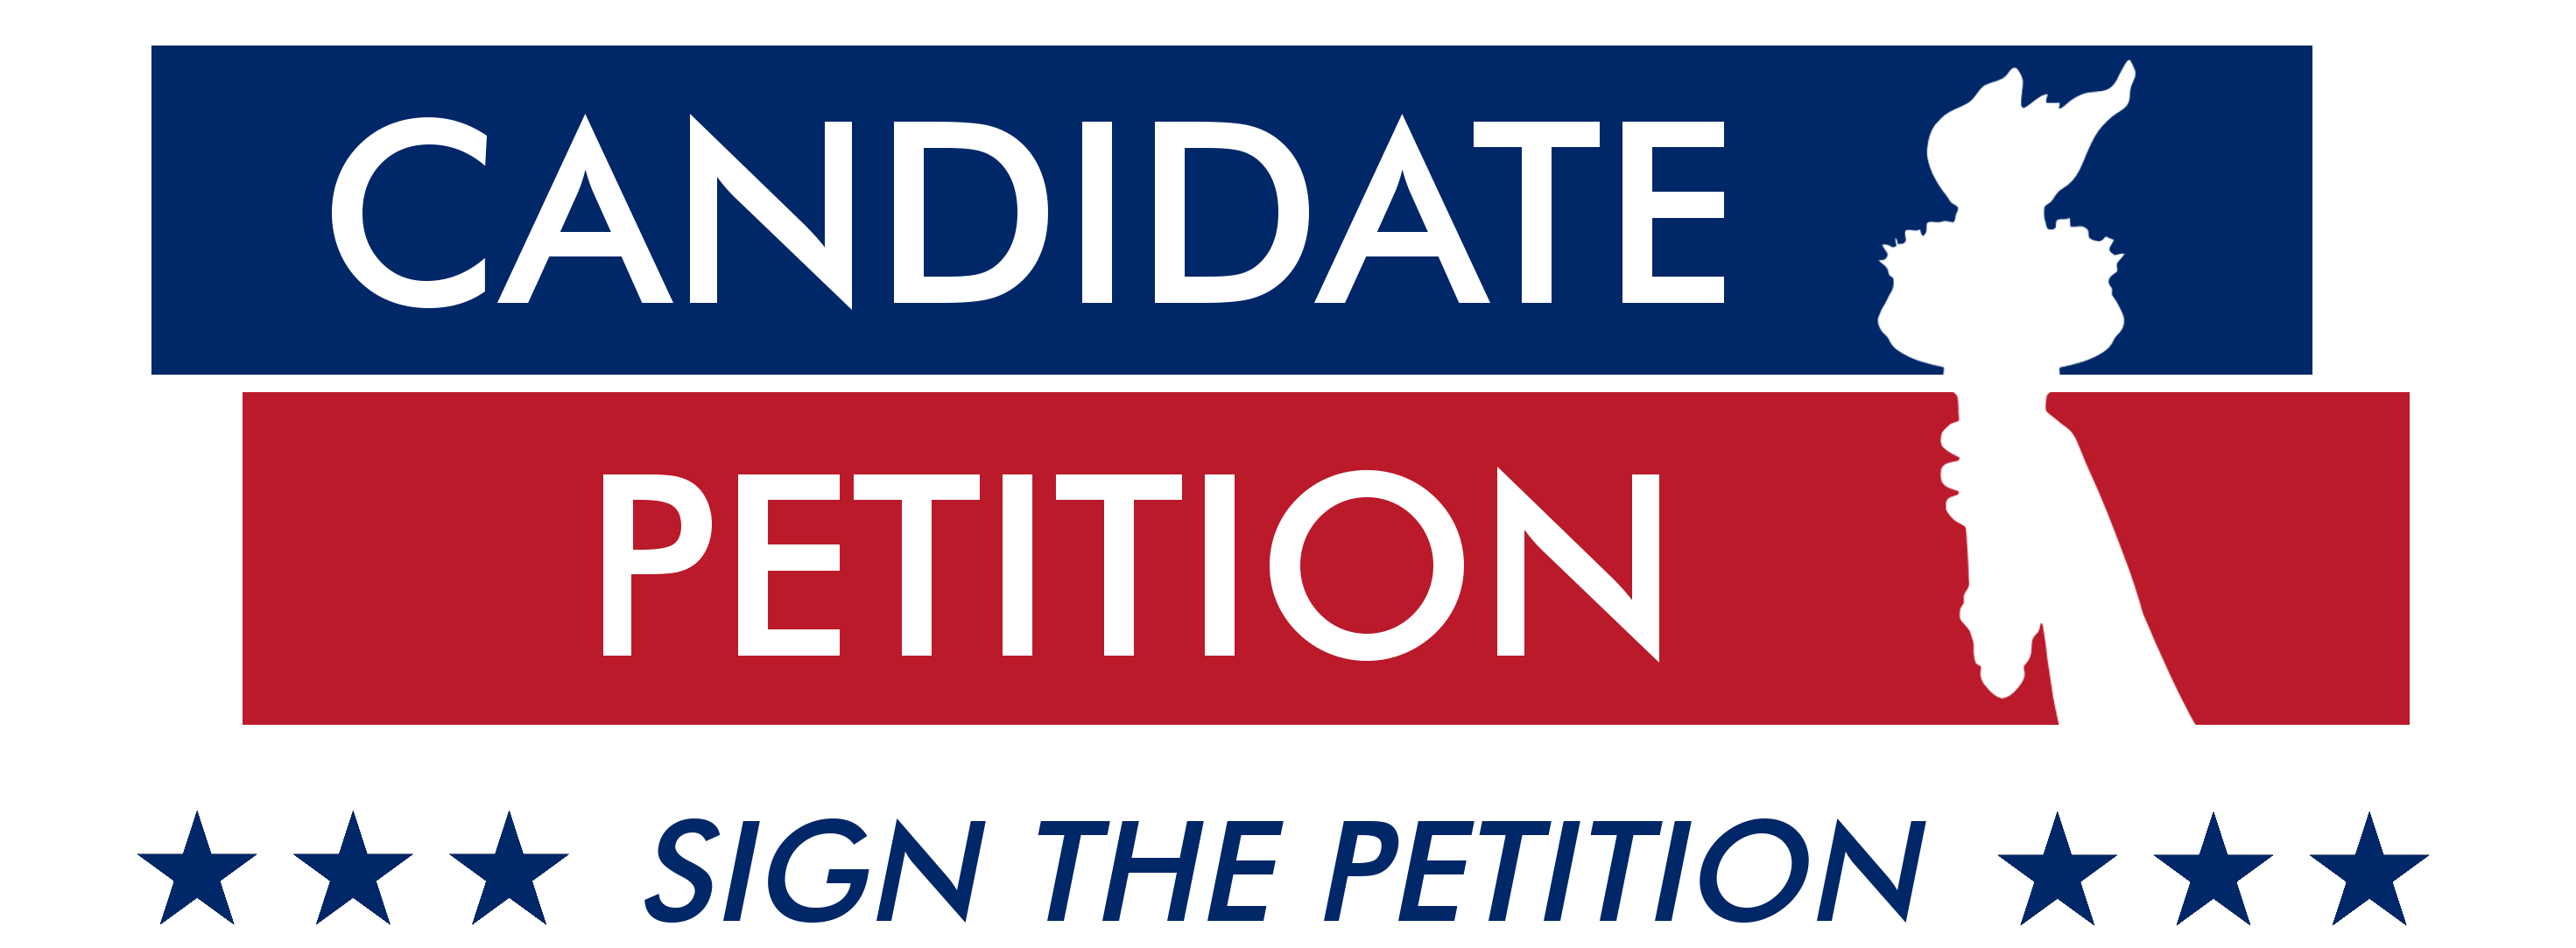 Candidate Petition